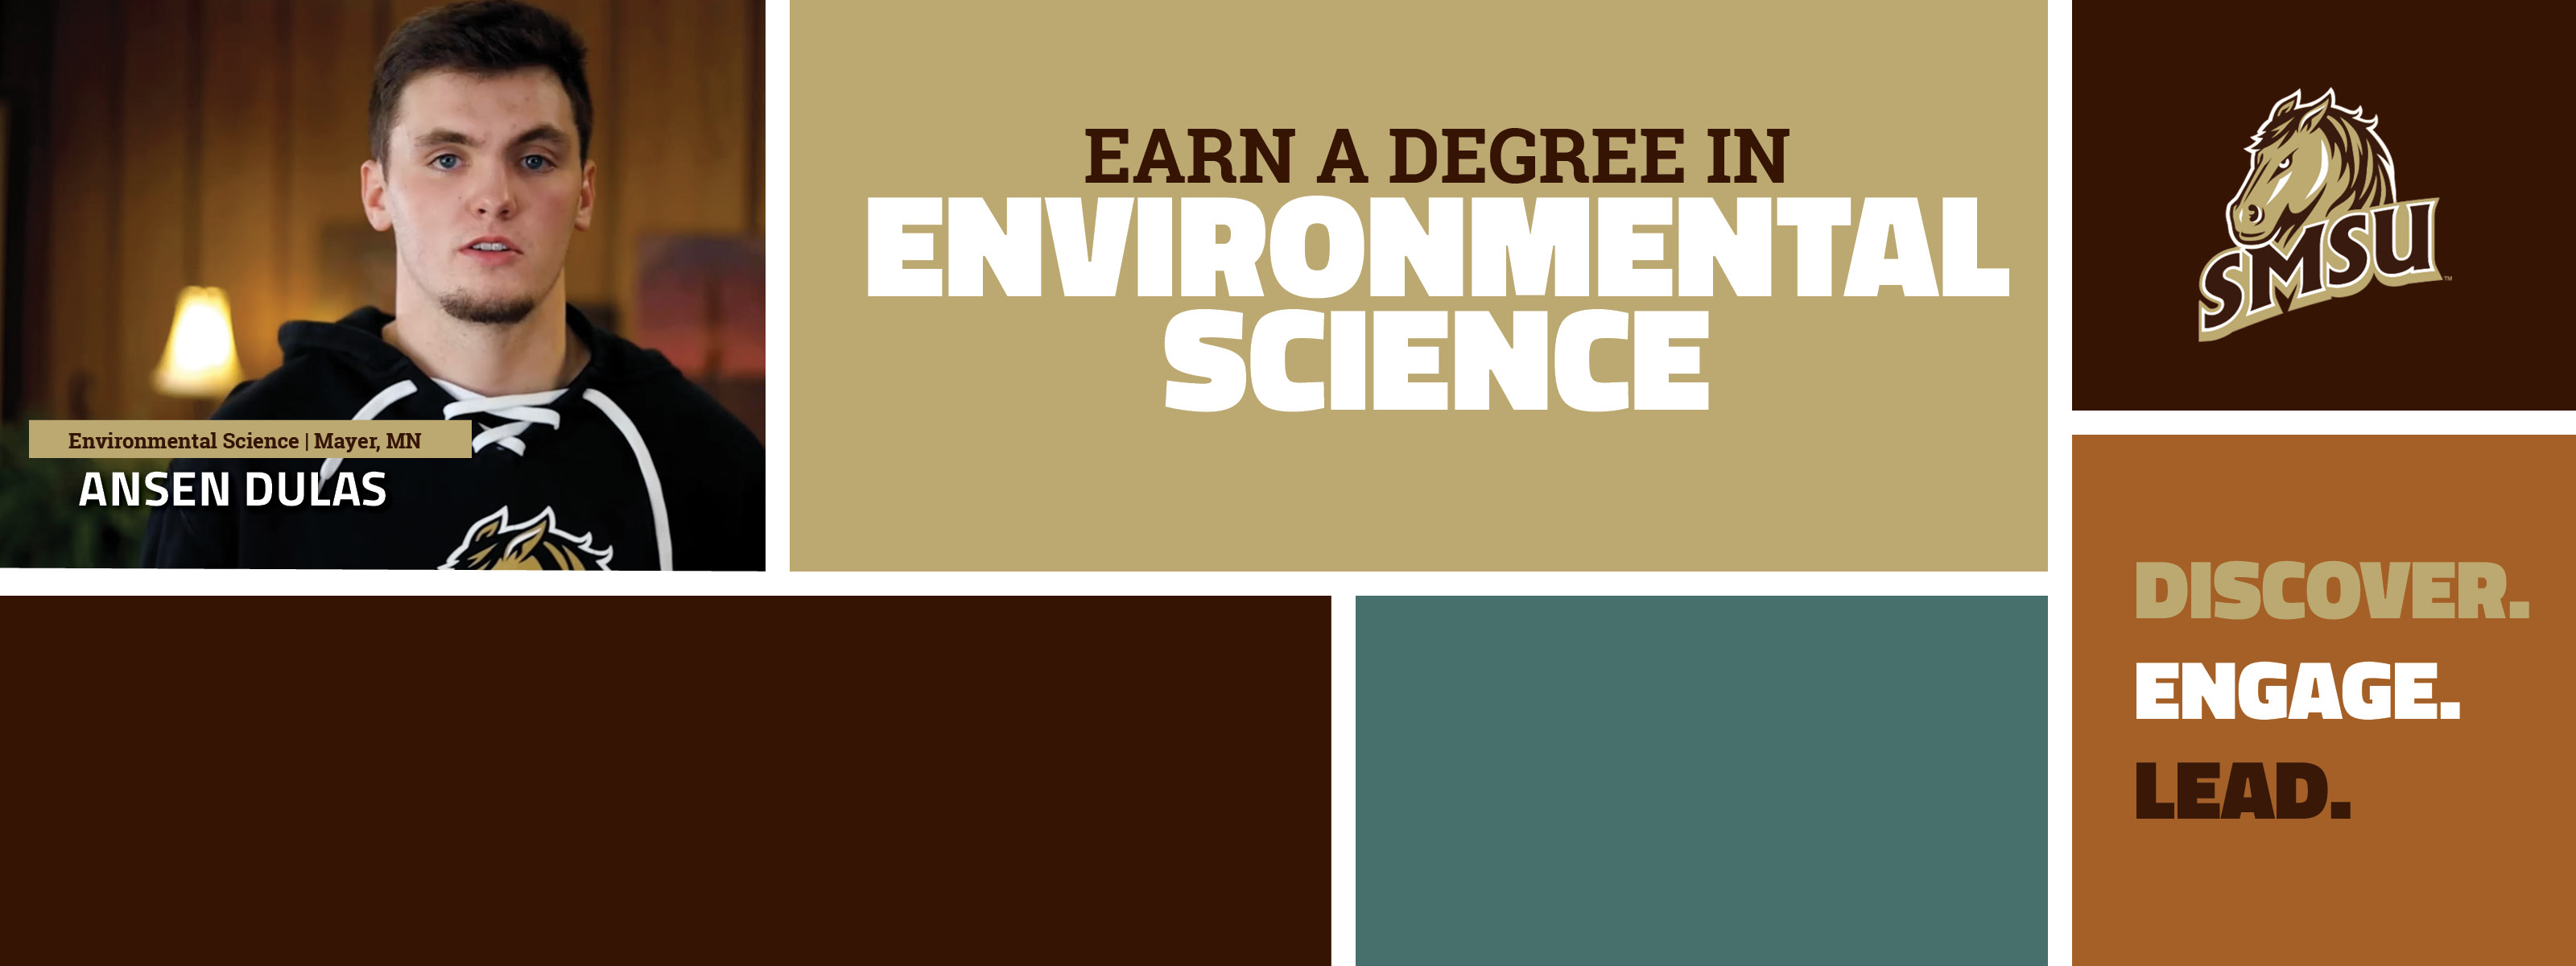 Earn A Degree In Environmental Science - Discover. Engage. Lead.